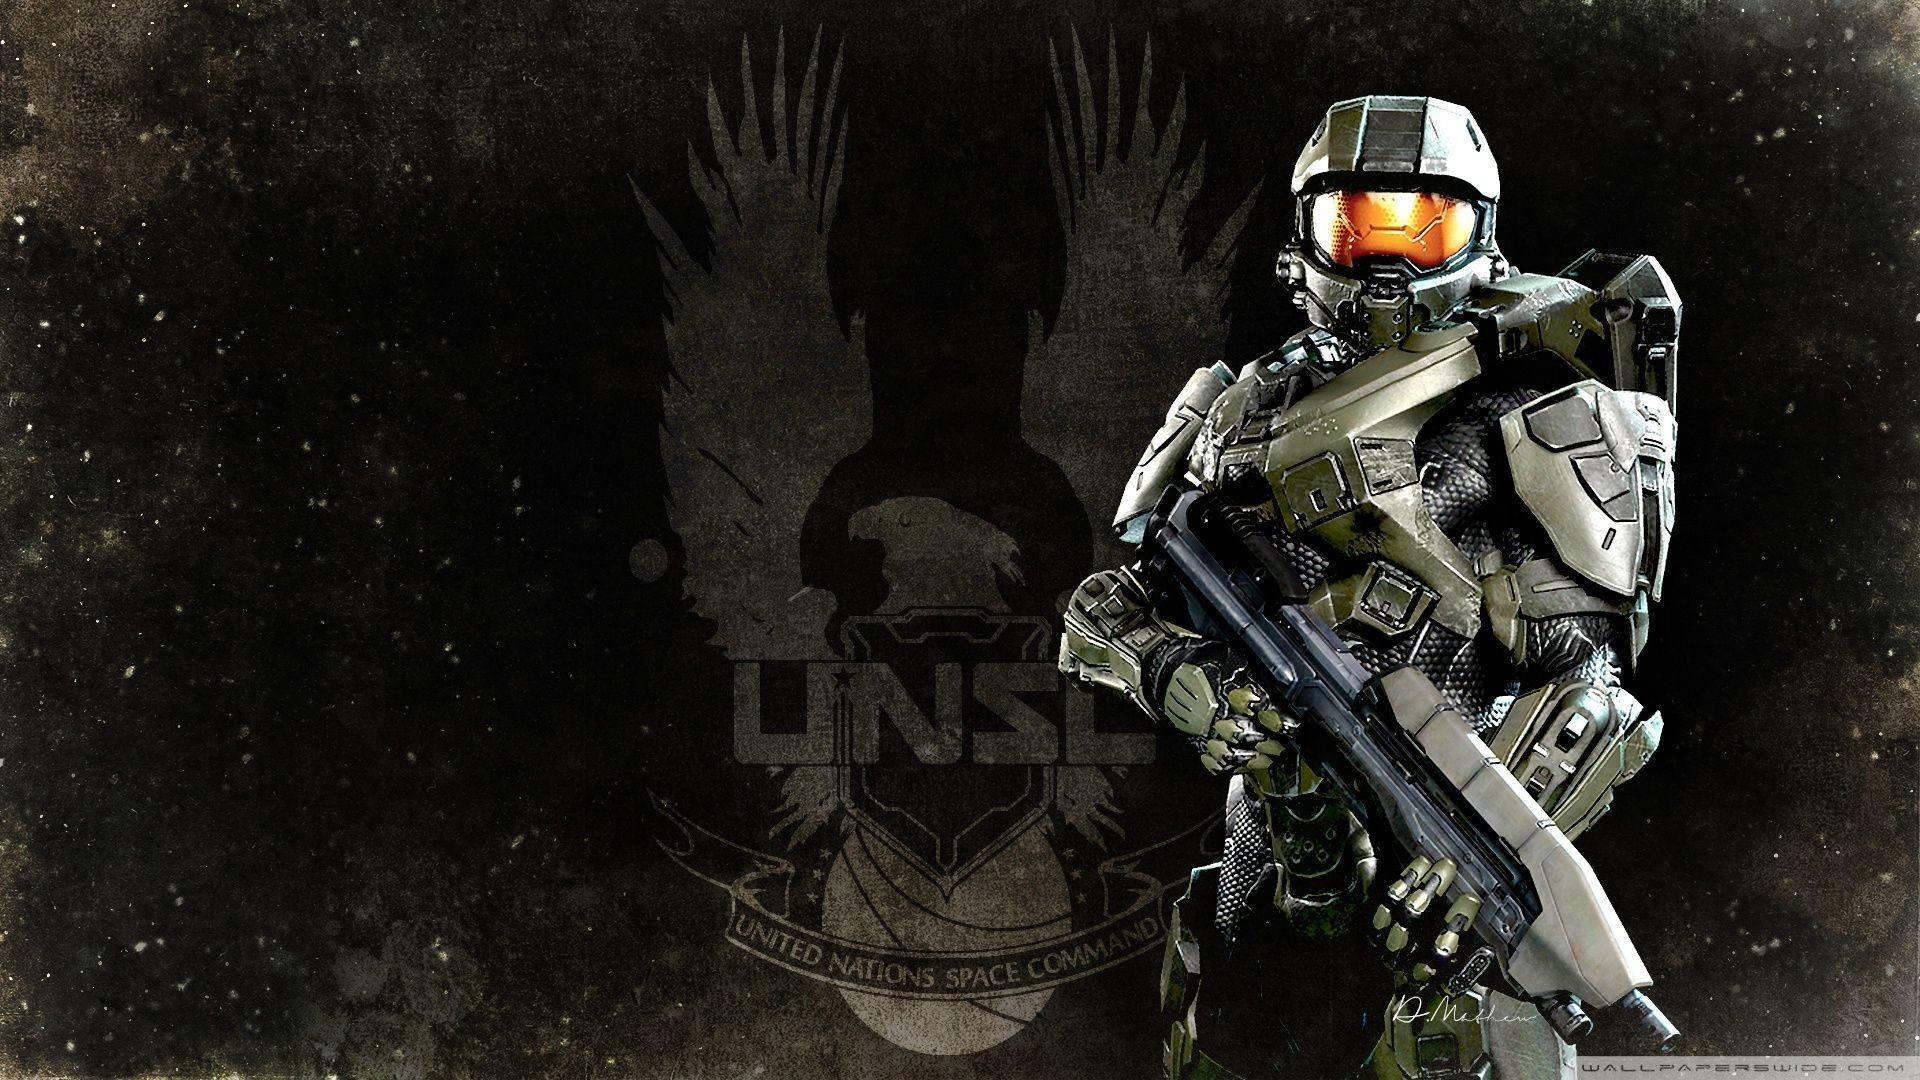 1920x1080 Halo 5 Master Chief Wallpaper